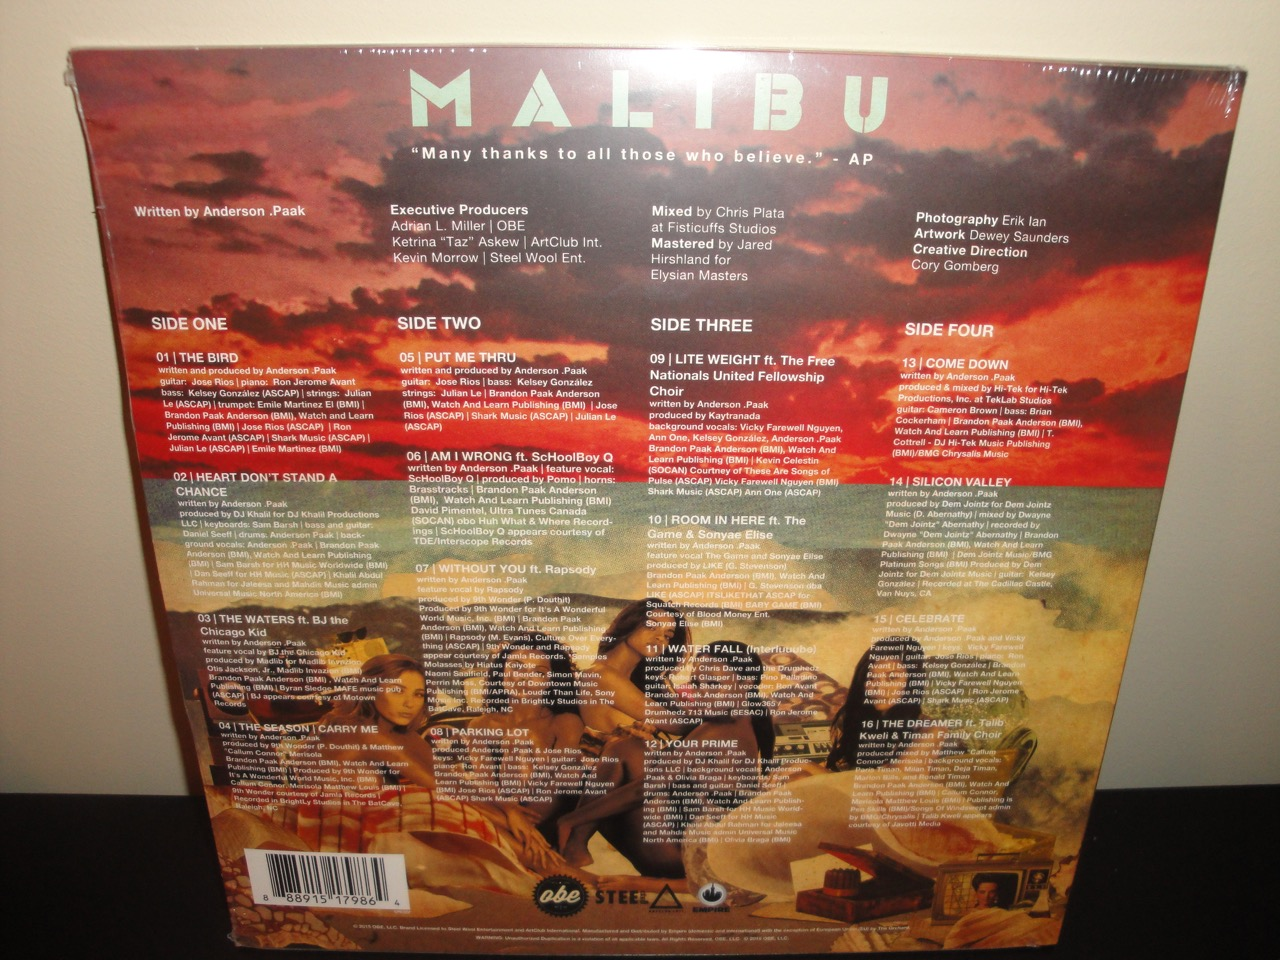 anderson paak malibu download 320